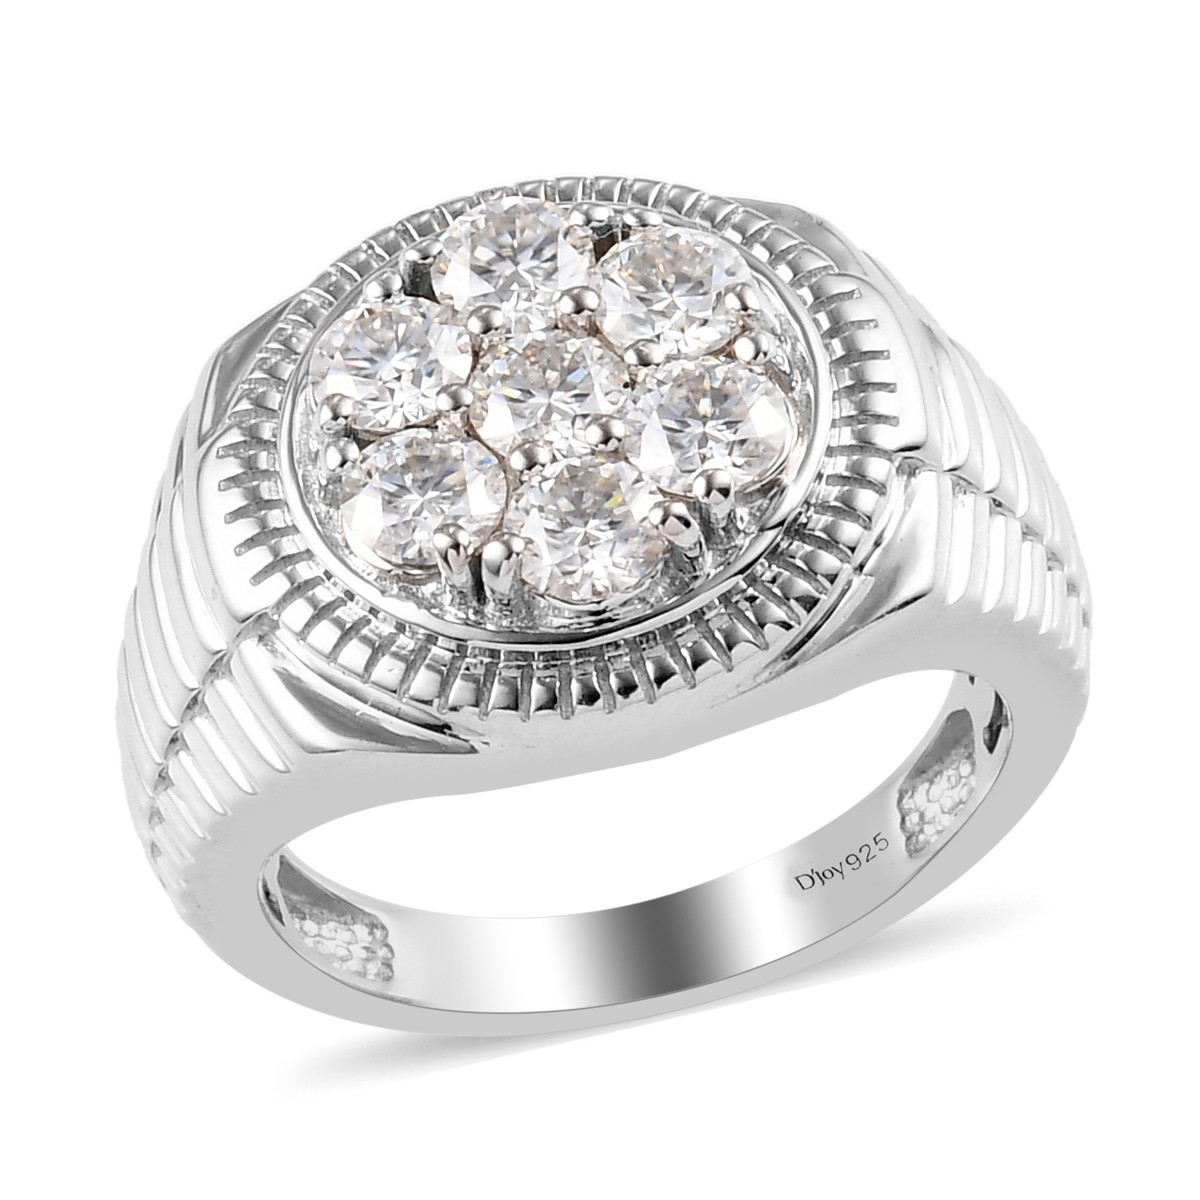 Shop LC Platinum Plated 925 Sterling Silver Zircon Charm